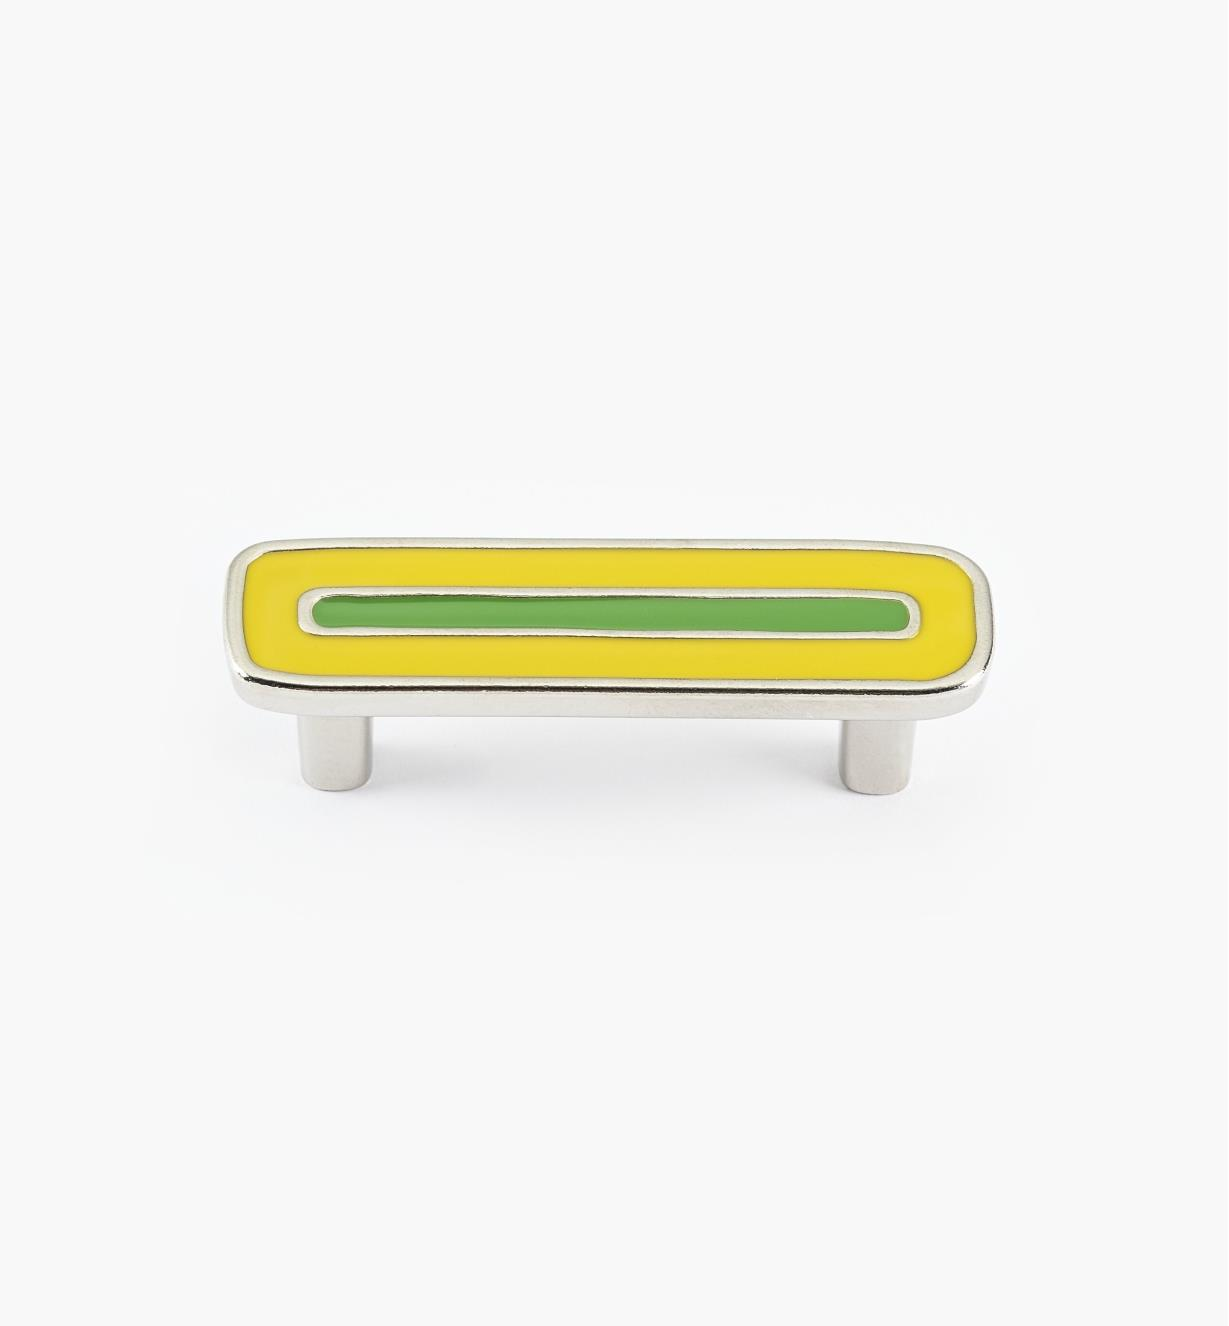 01X4362 - Enamel Infill 64mm x 90mm Small Yellow/Green Handle